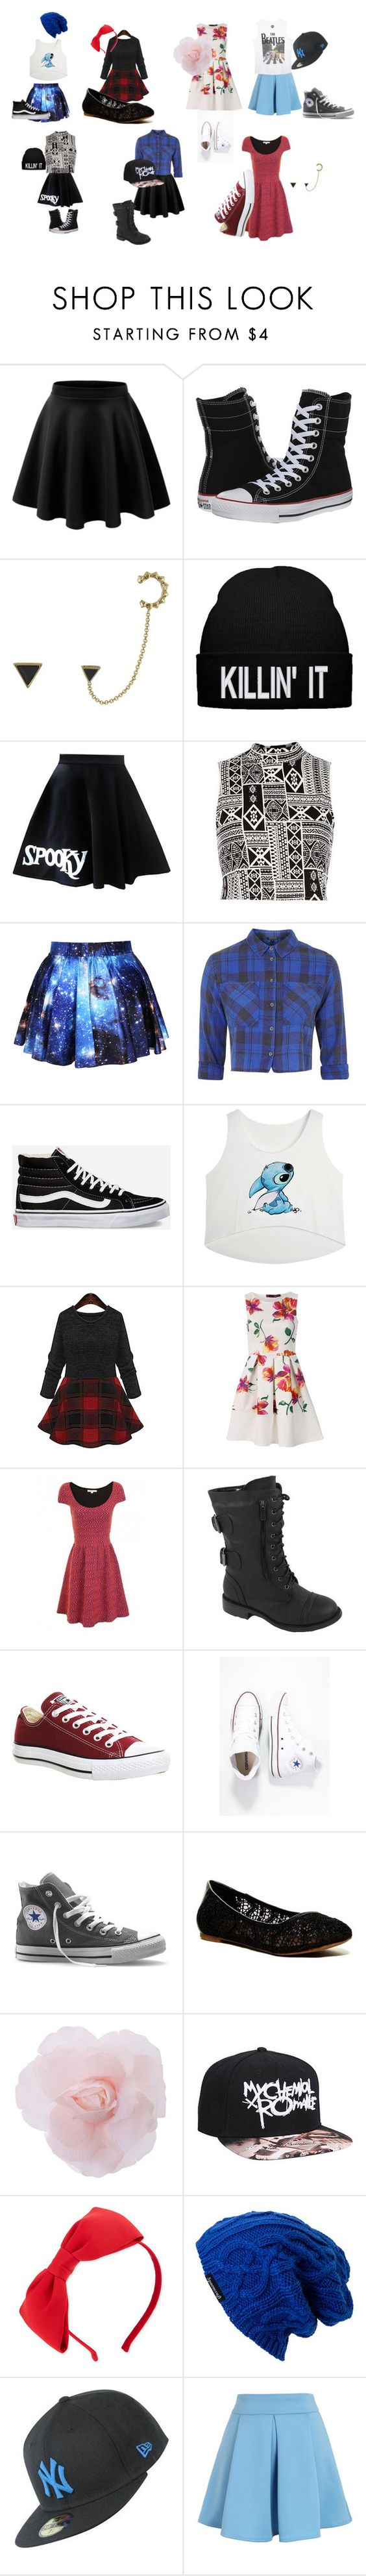 """""""more stuff"""" by because-it-is on Polyvore featuring LE3NO, Converse, House of Harlow 1960, River Island, Topshop, Vans, Top Moda, Lucky Brand, Kate Spade and Spacecraft"""